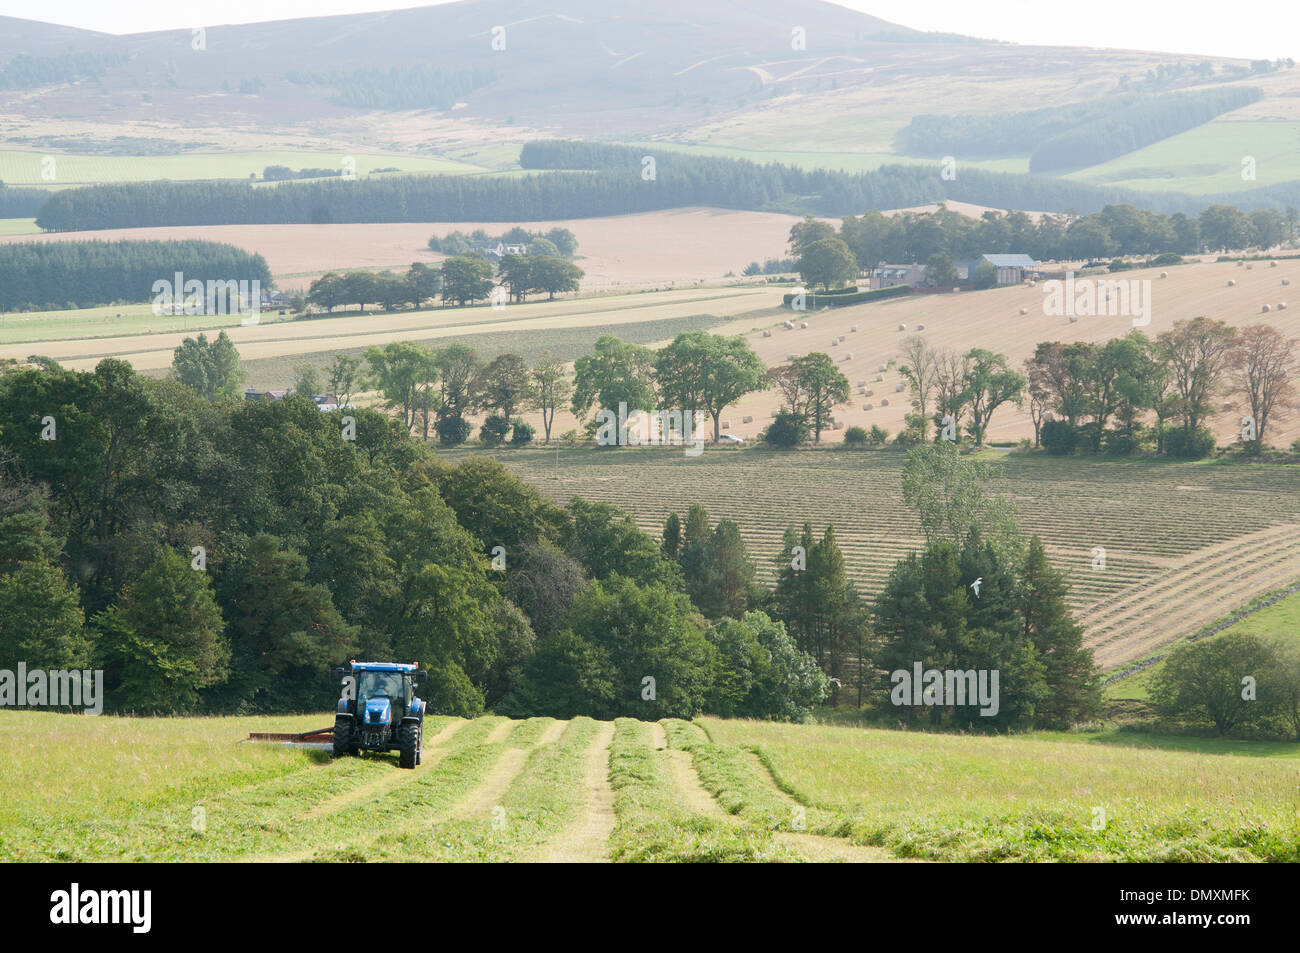 royal deeside in the scottish countryside with farming and a tractor - Stock Image